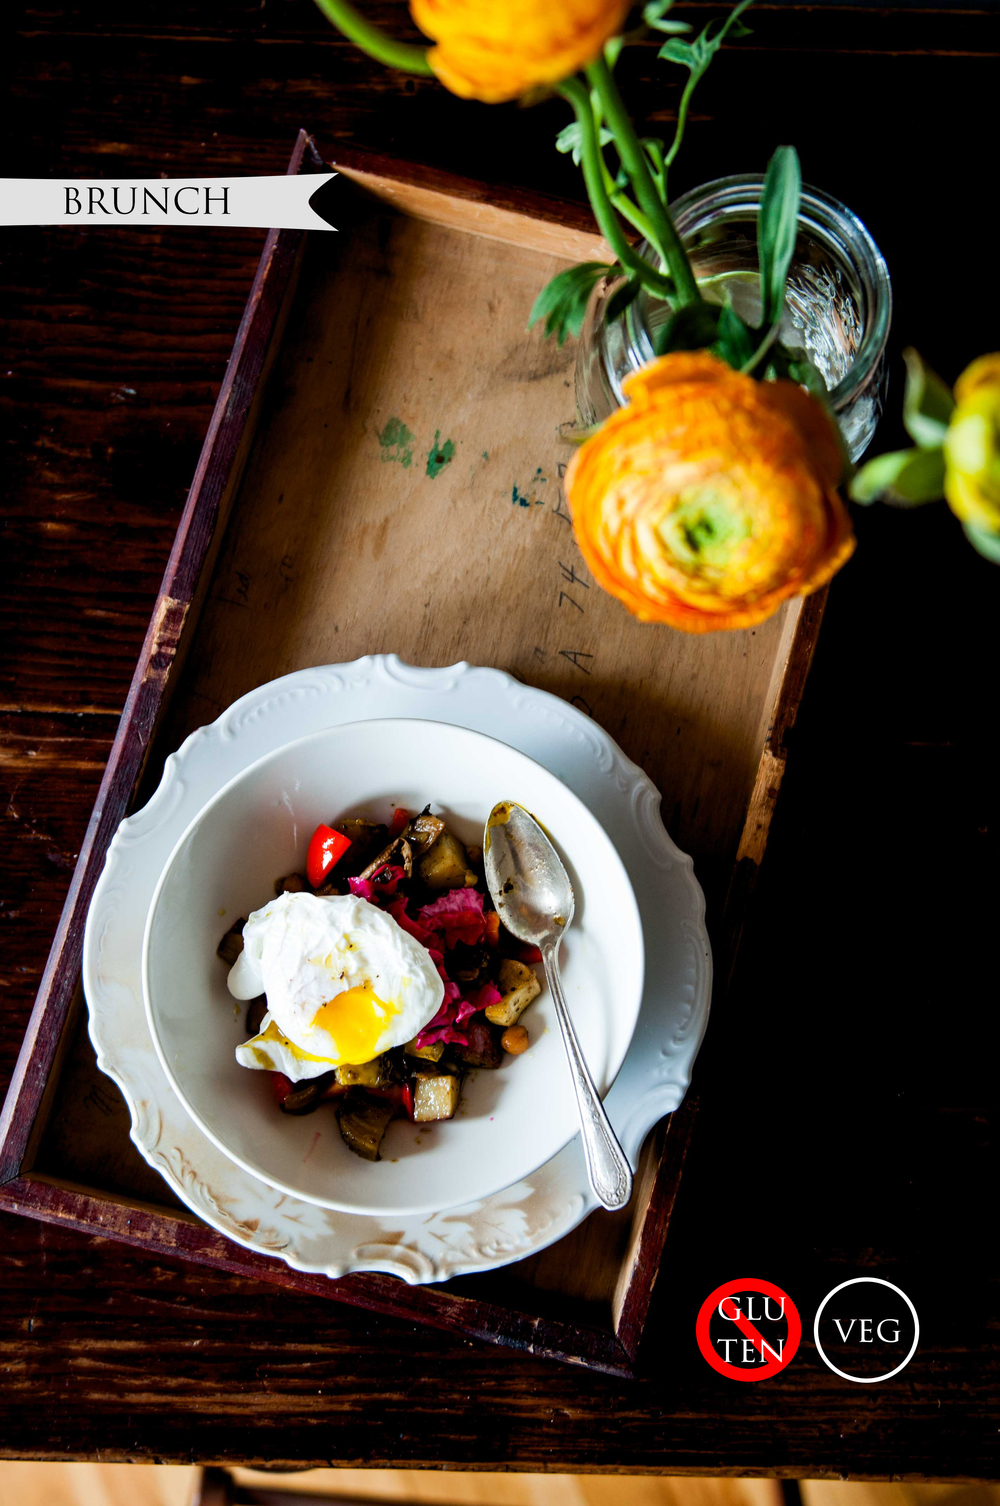 ROAST VEGETABLE HASH + CREAMED CHATERELLE RYE TOAST